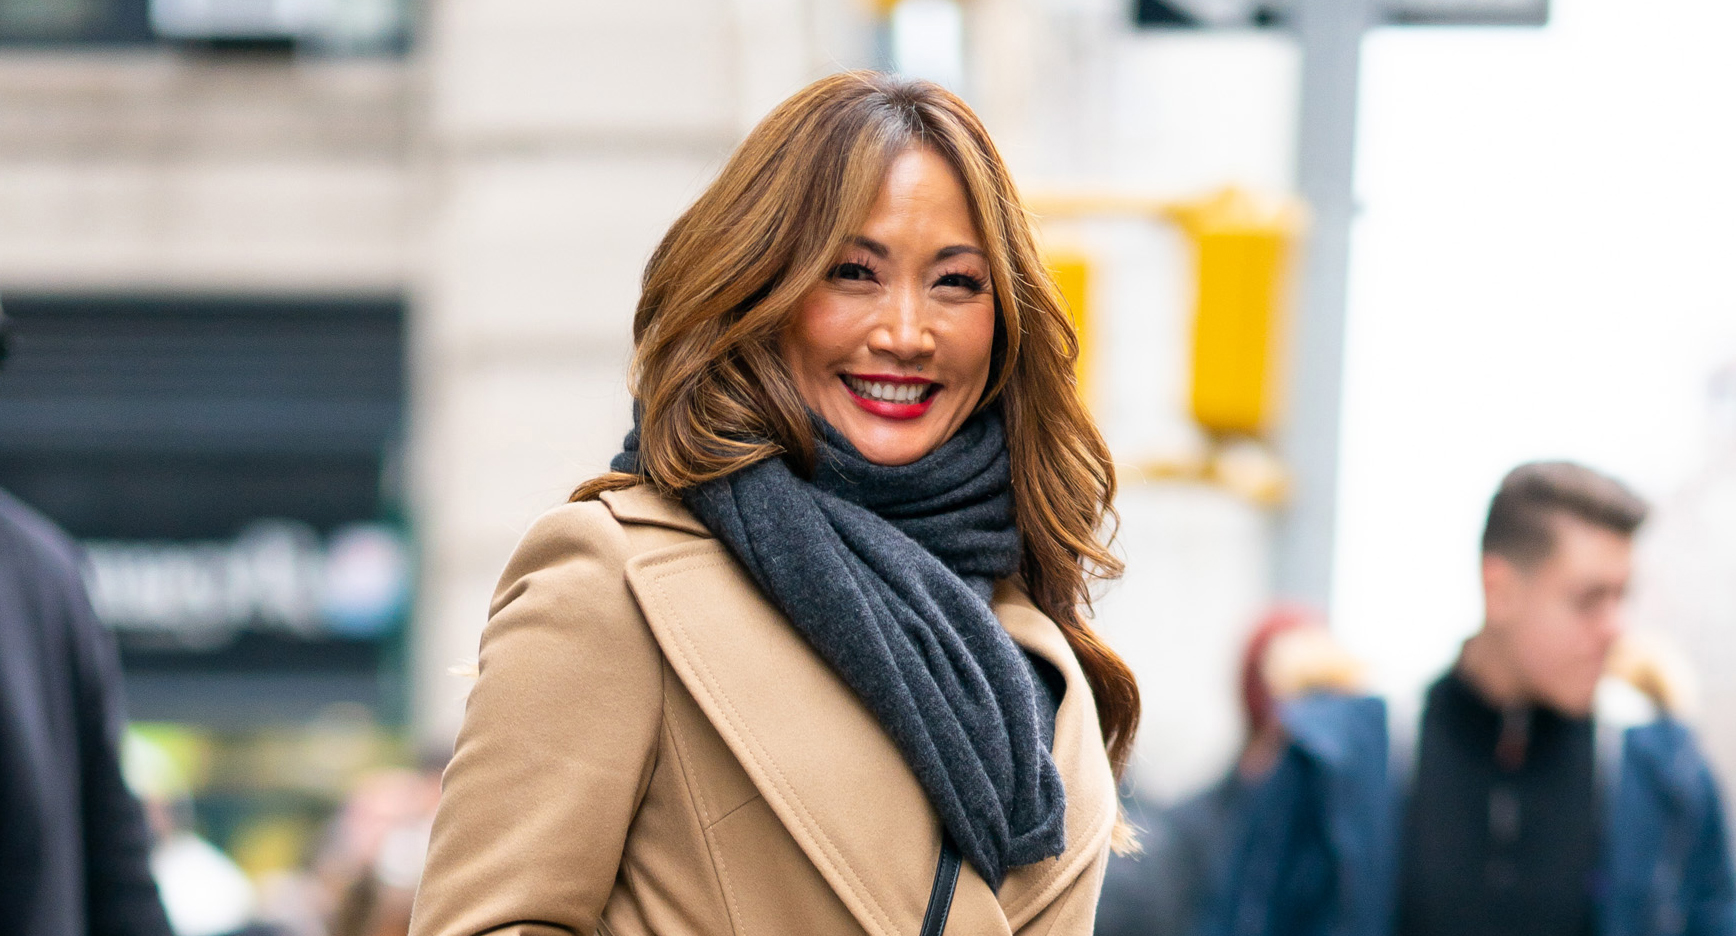 Carrie Ann Inaba Reveals How 'The Talk' Helped Her Find Her Voice and True Calling (Exclusive)